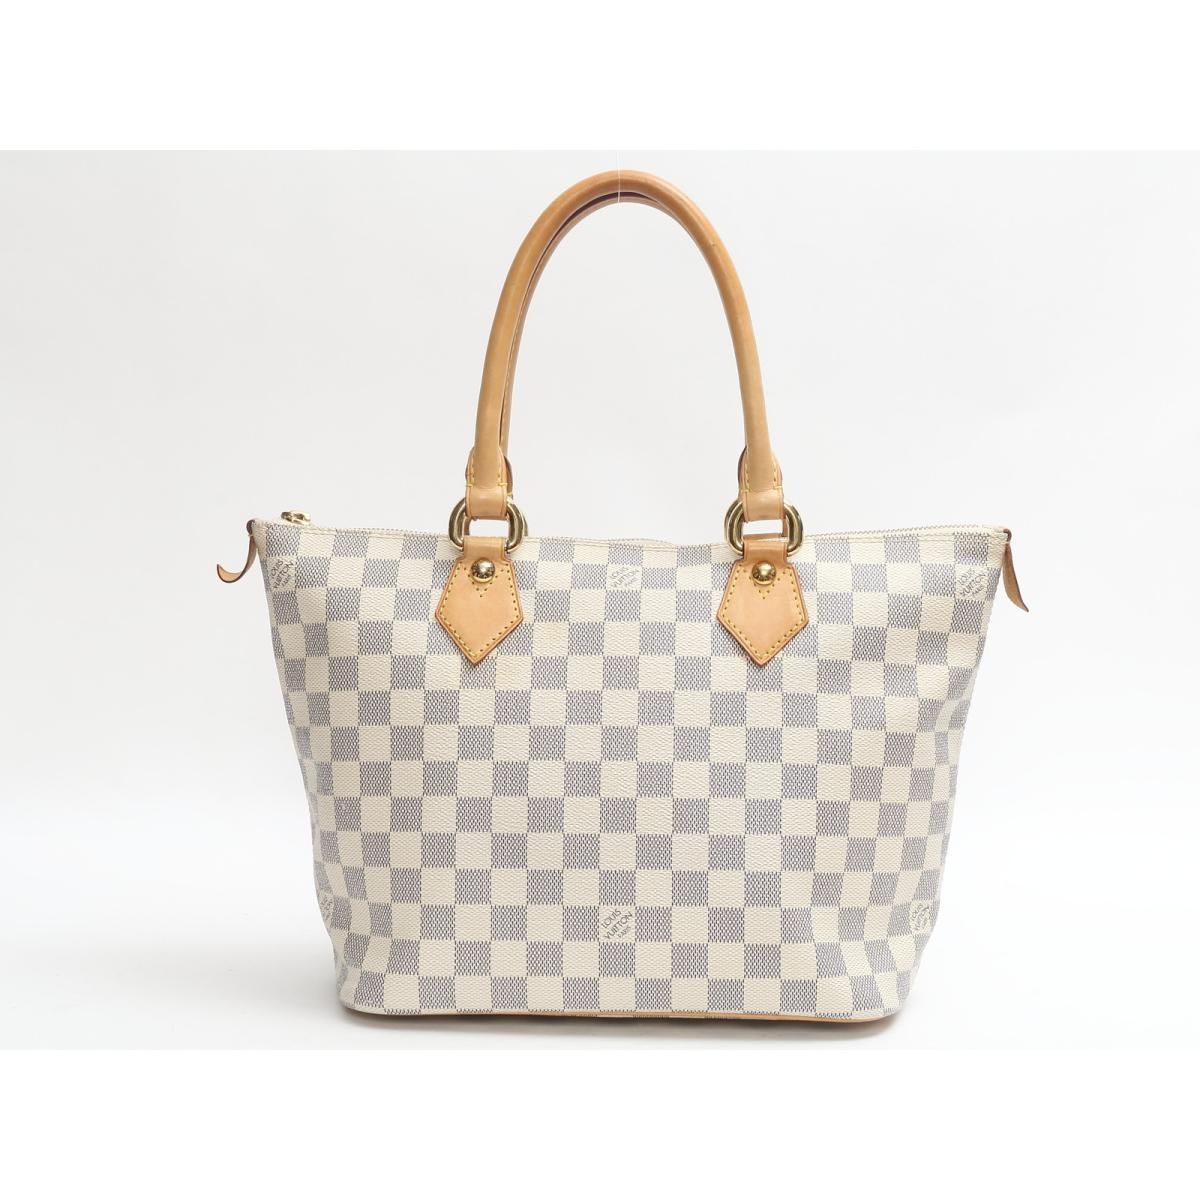 a10e2ef75793 Auth LOUIS VUITTON Saleya Mm Shoulder Tote Bag N51185 Damier Azur Used